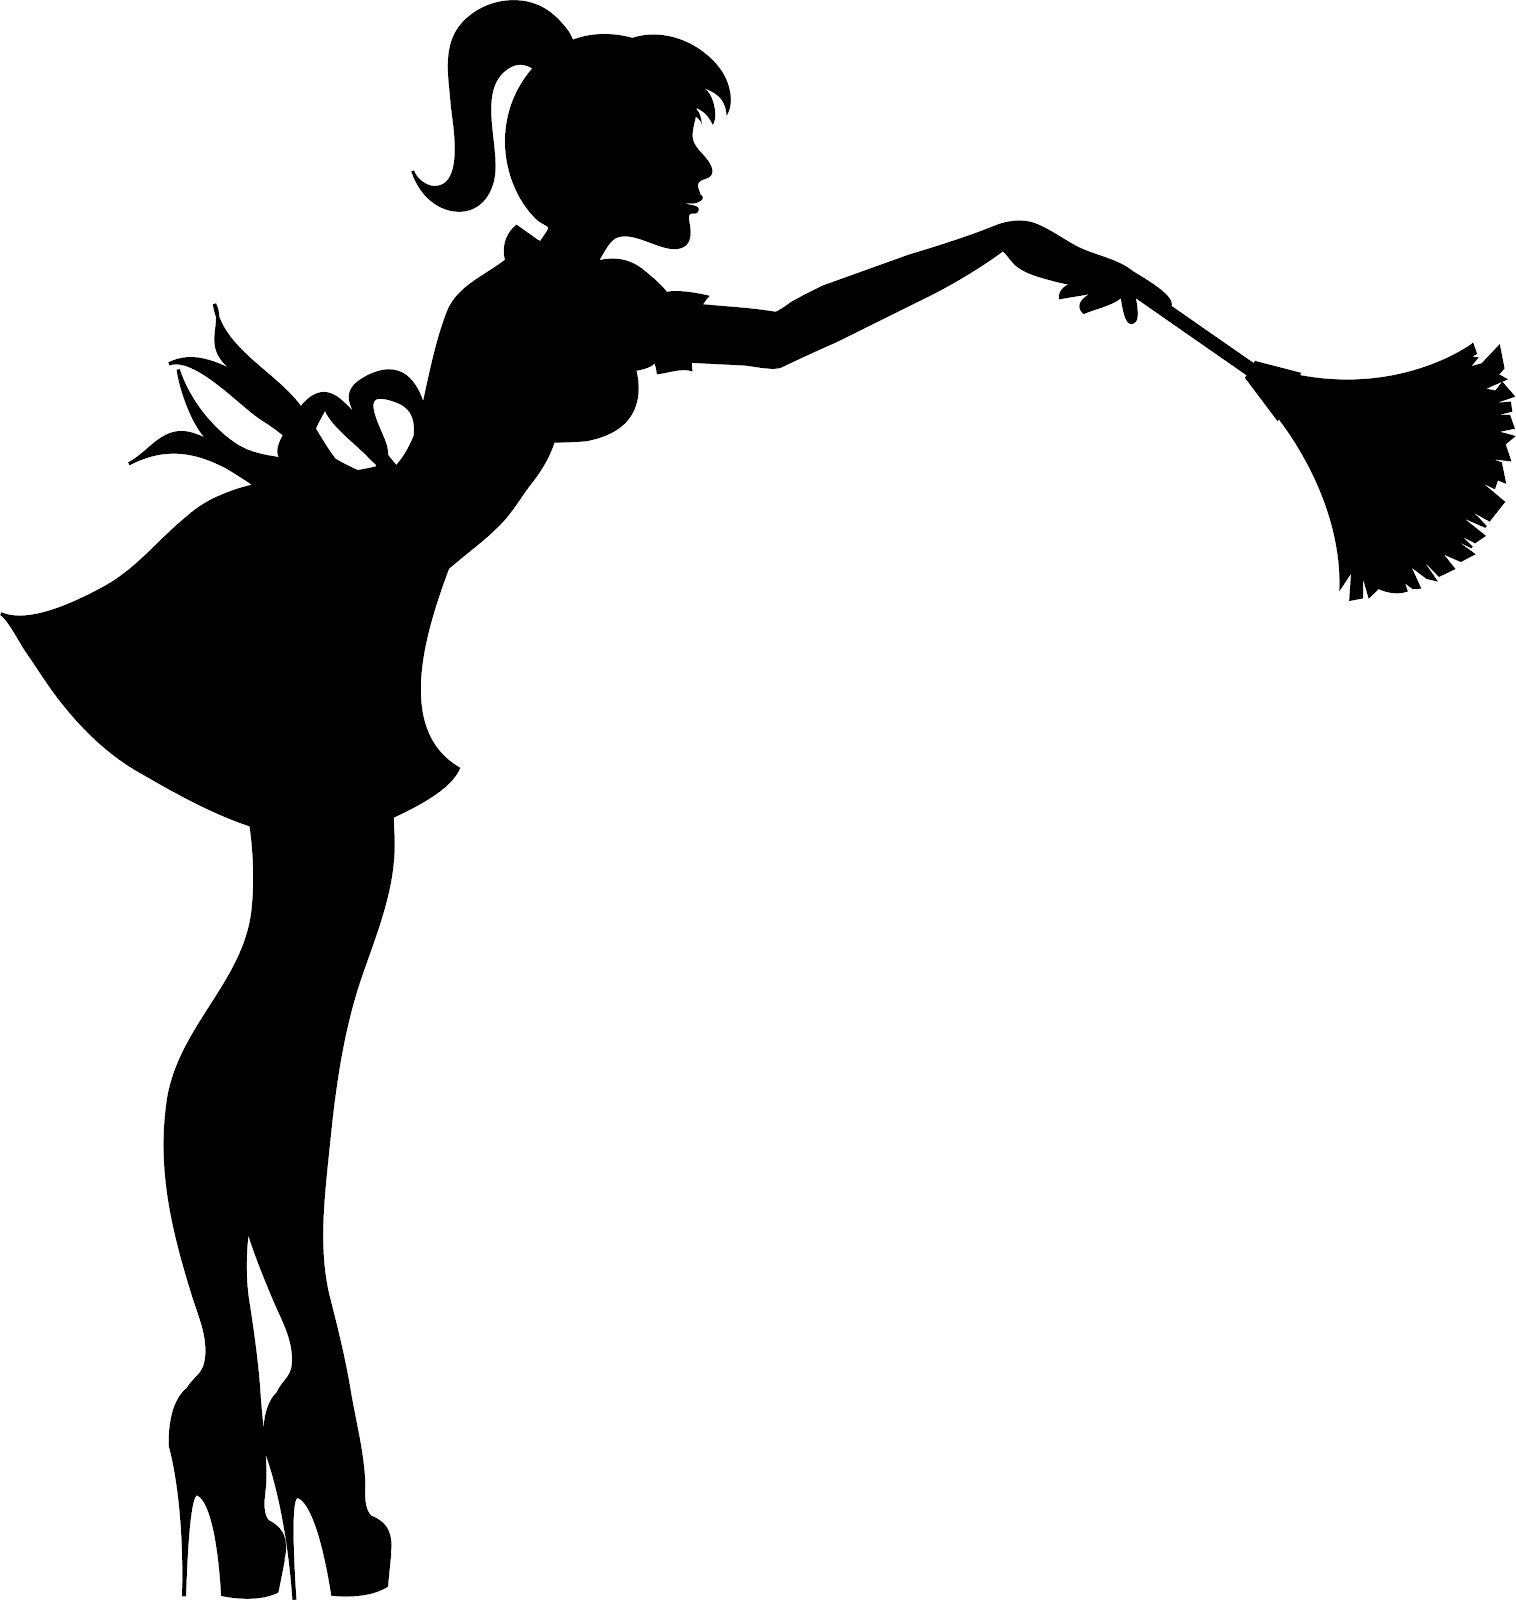 Maid Cleaning Service Clip Art N3 free image.